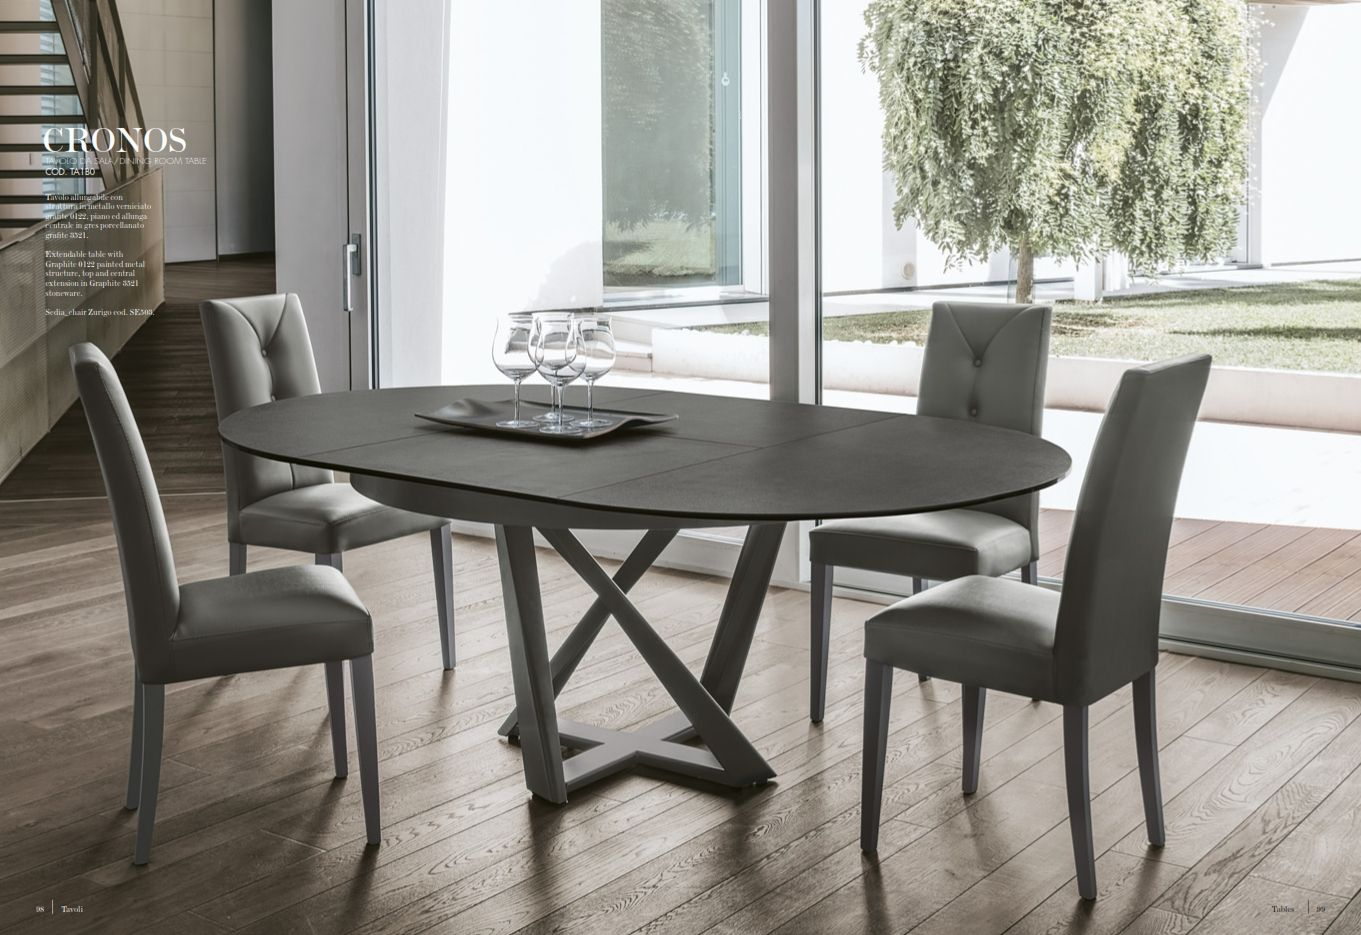 Dining table target point cronos series